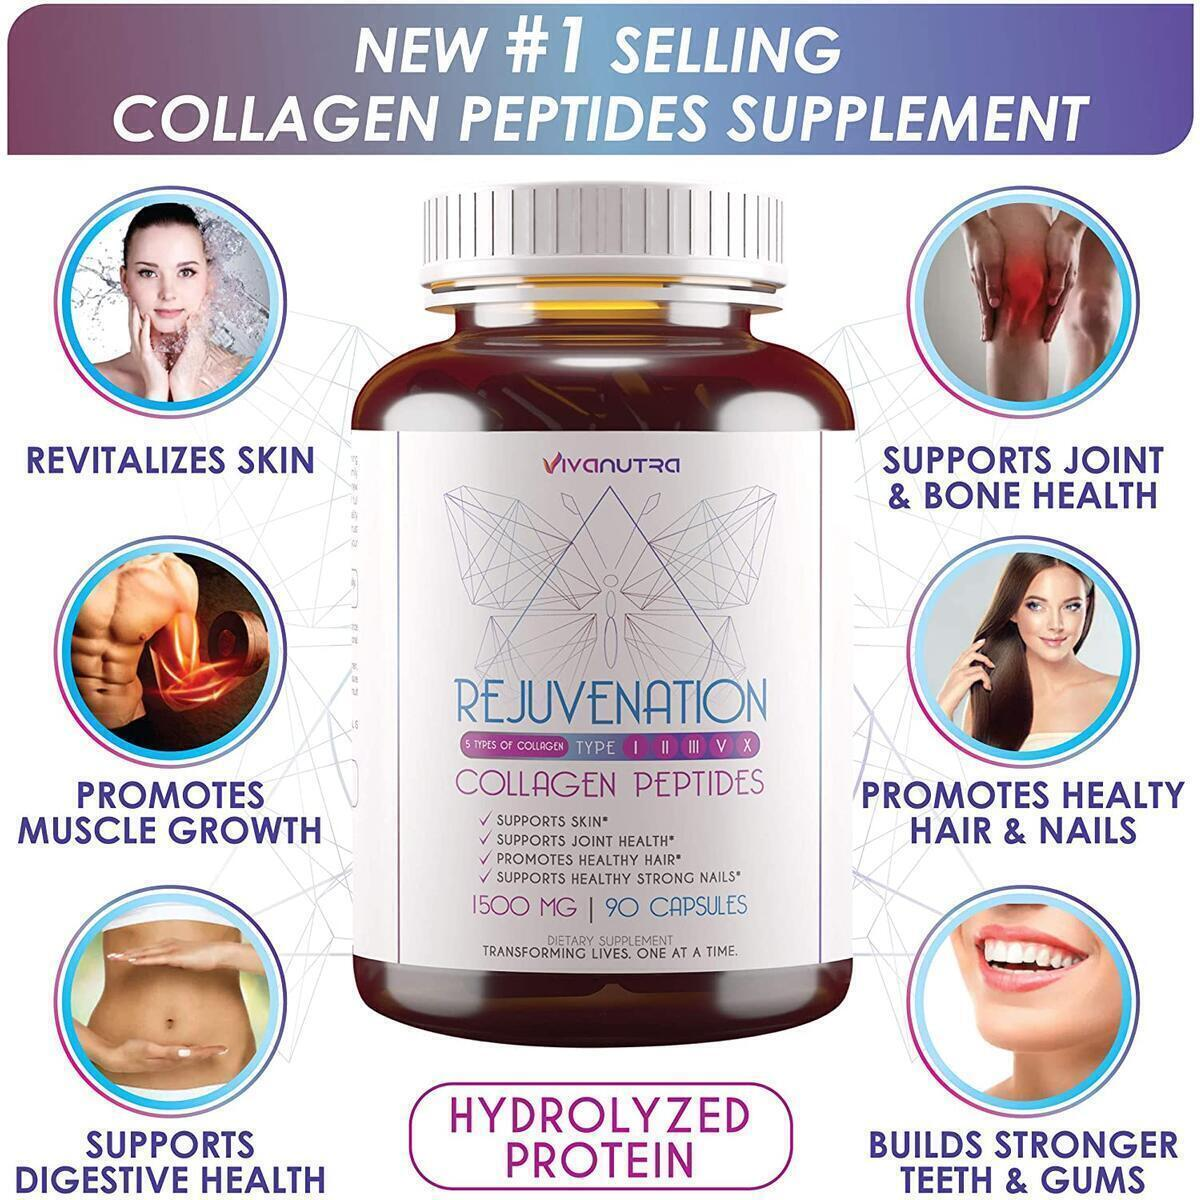 Multi Collagen Pills (Types I, II, III, V & X) - 90 Collagen Peptides Capsules - Pure Hydrolyzed Collagen Protein Supplement